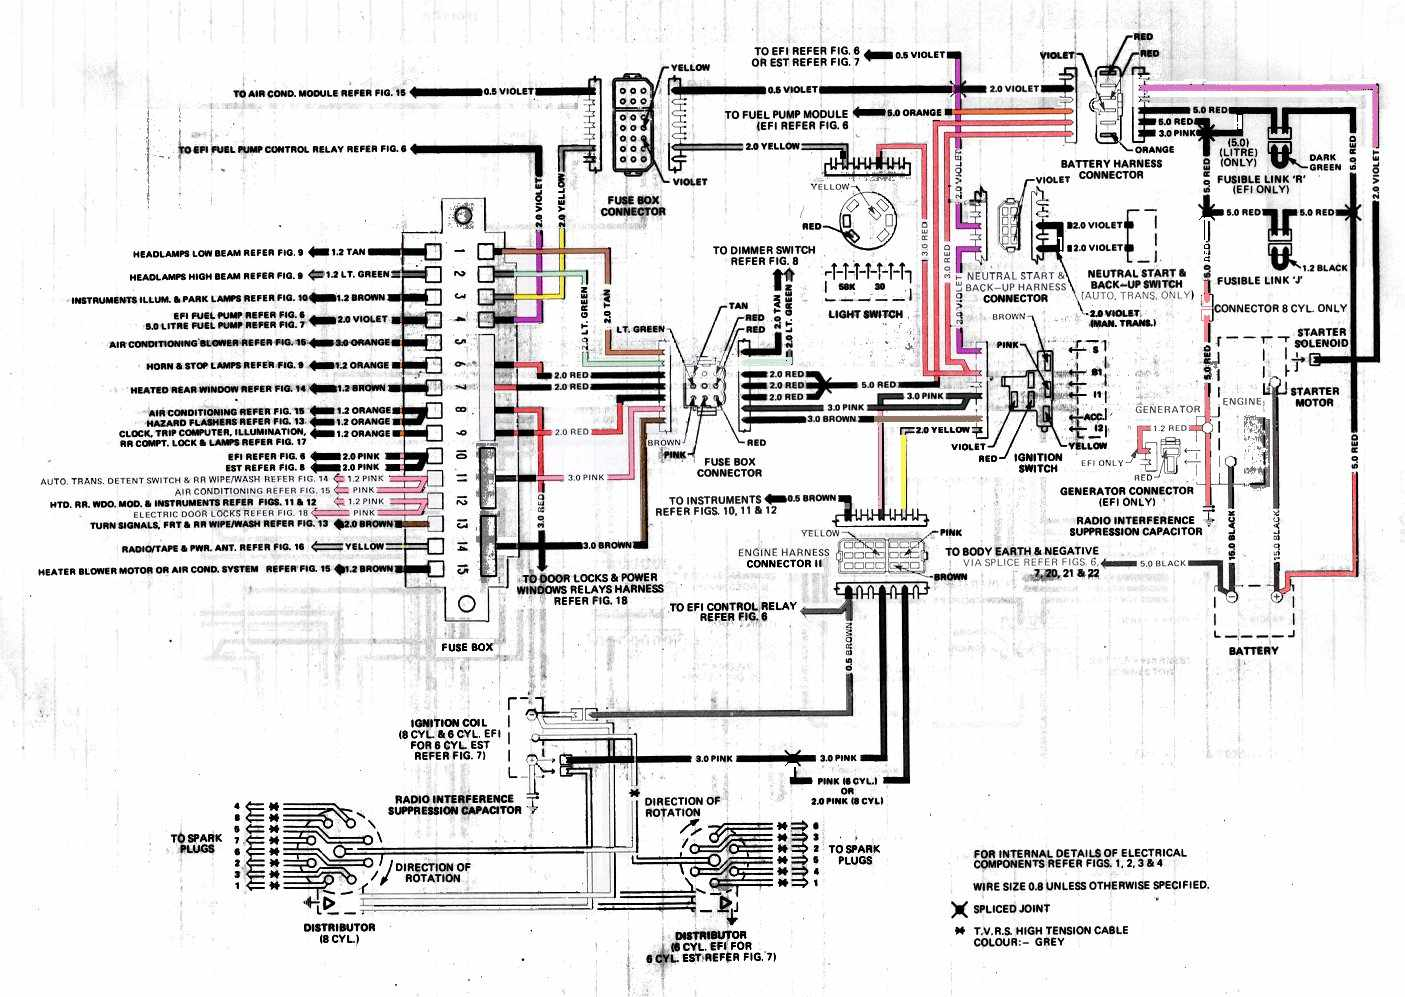 Xc Barina Wiring Diagram Electrical Diagrams 1999 Holden Stereo Sb 24 Images From 2006 Vk Commodore